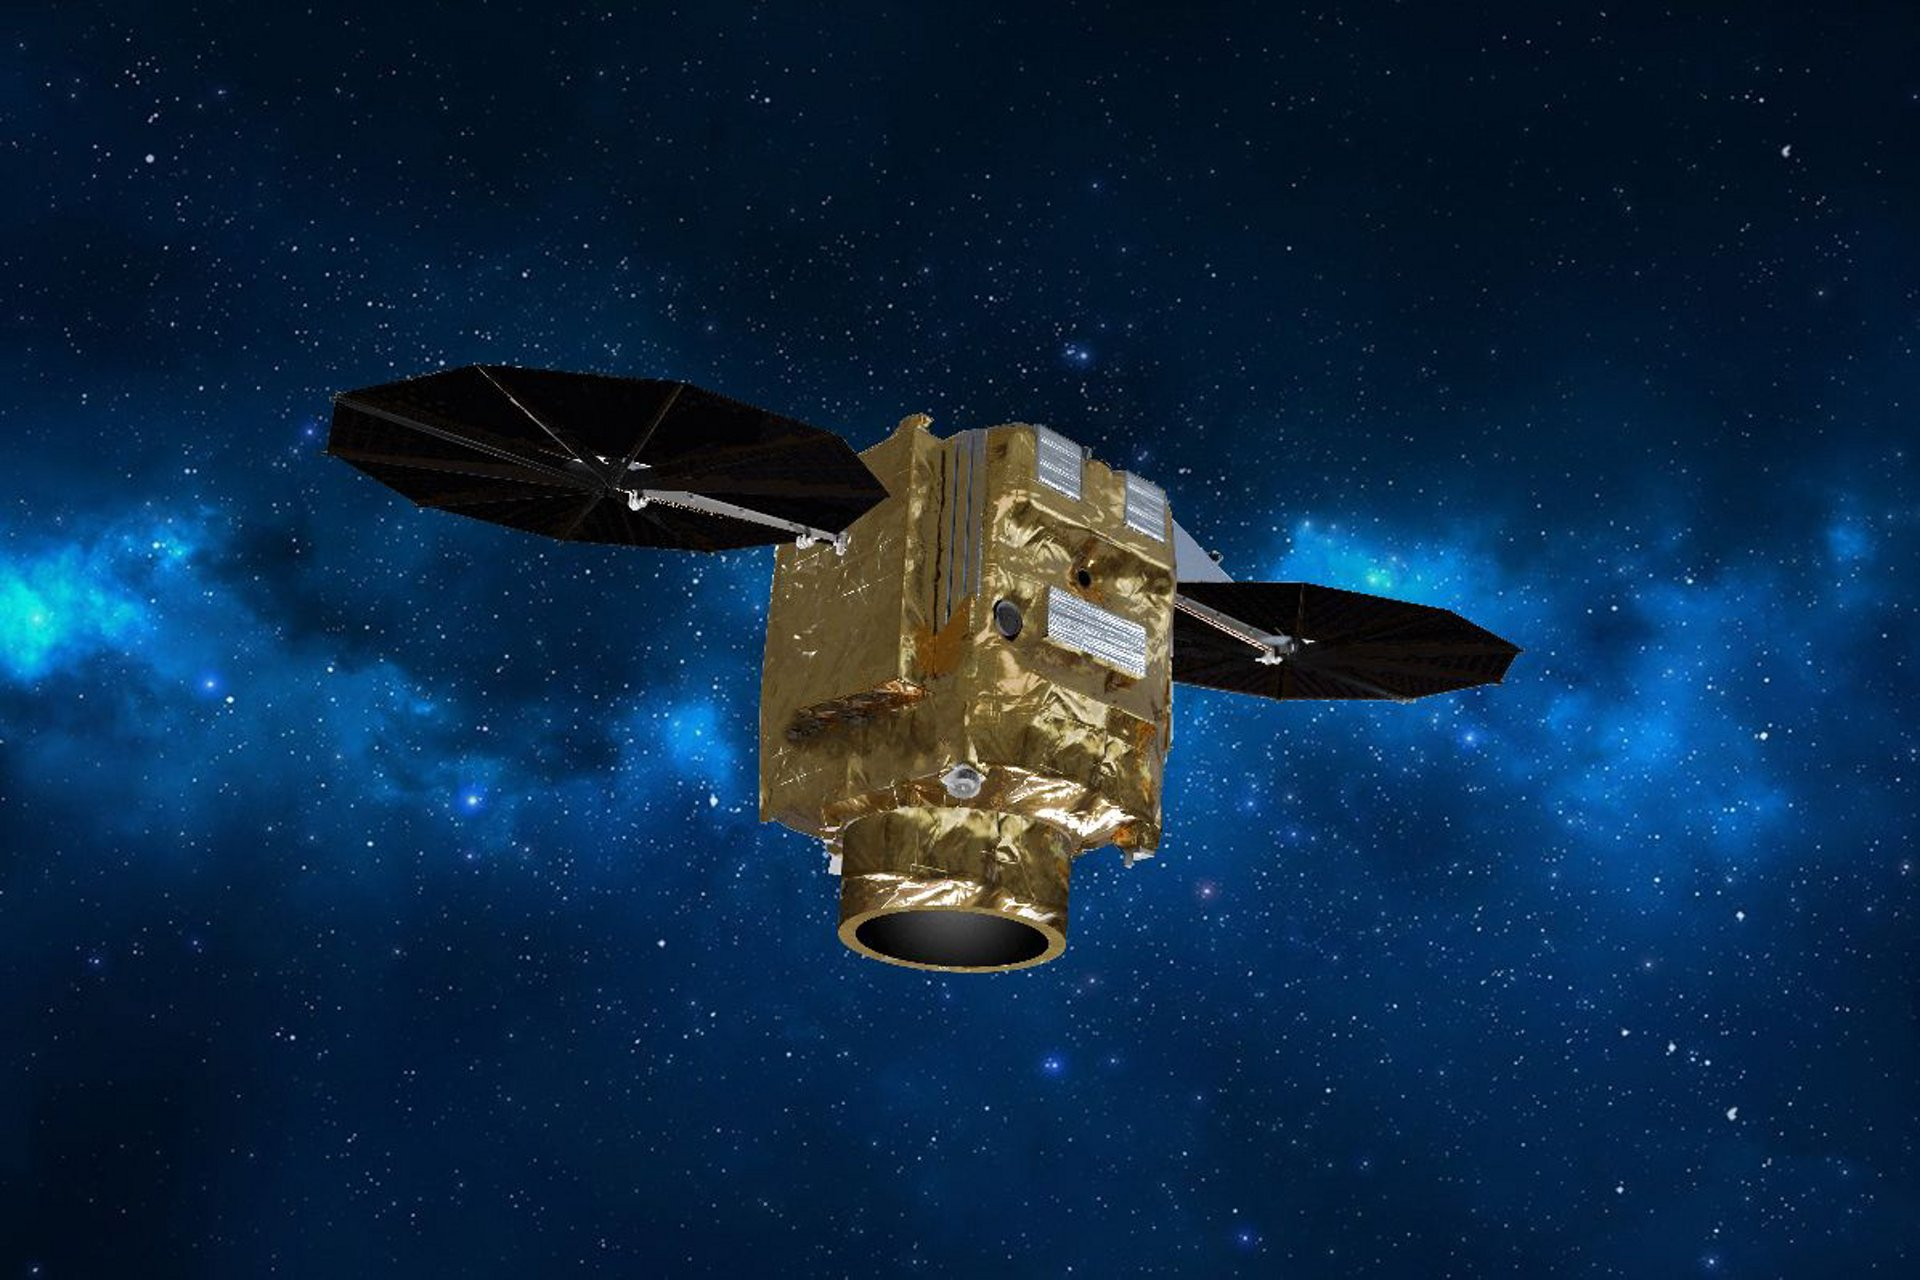 Airbus' Pléiades Neo satellites will provide commercial and institutional customers with very high-resolution imagery